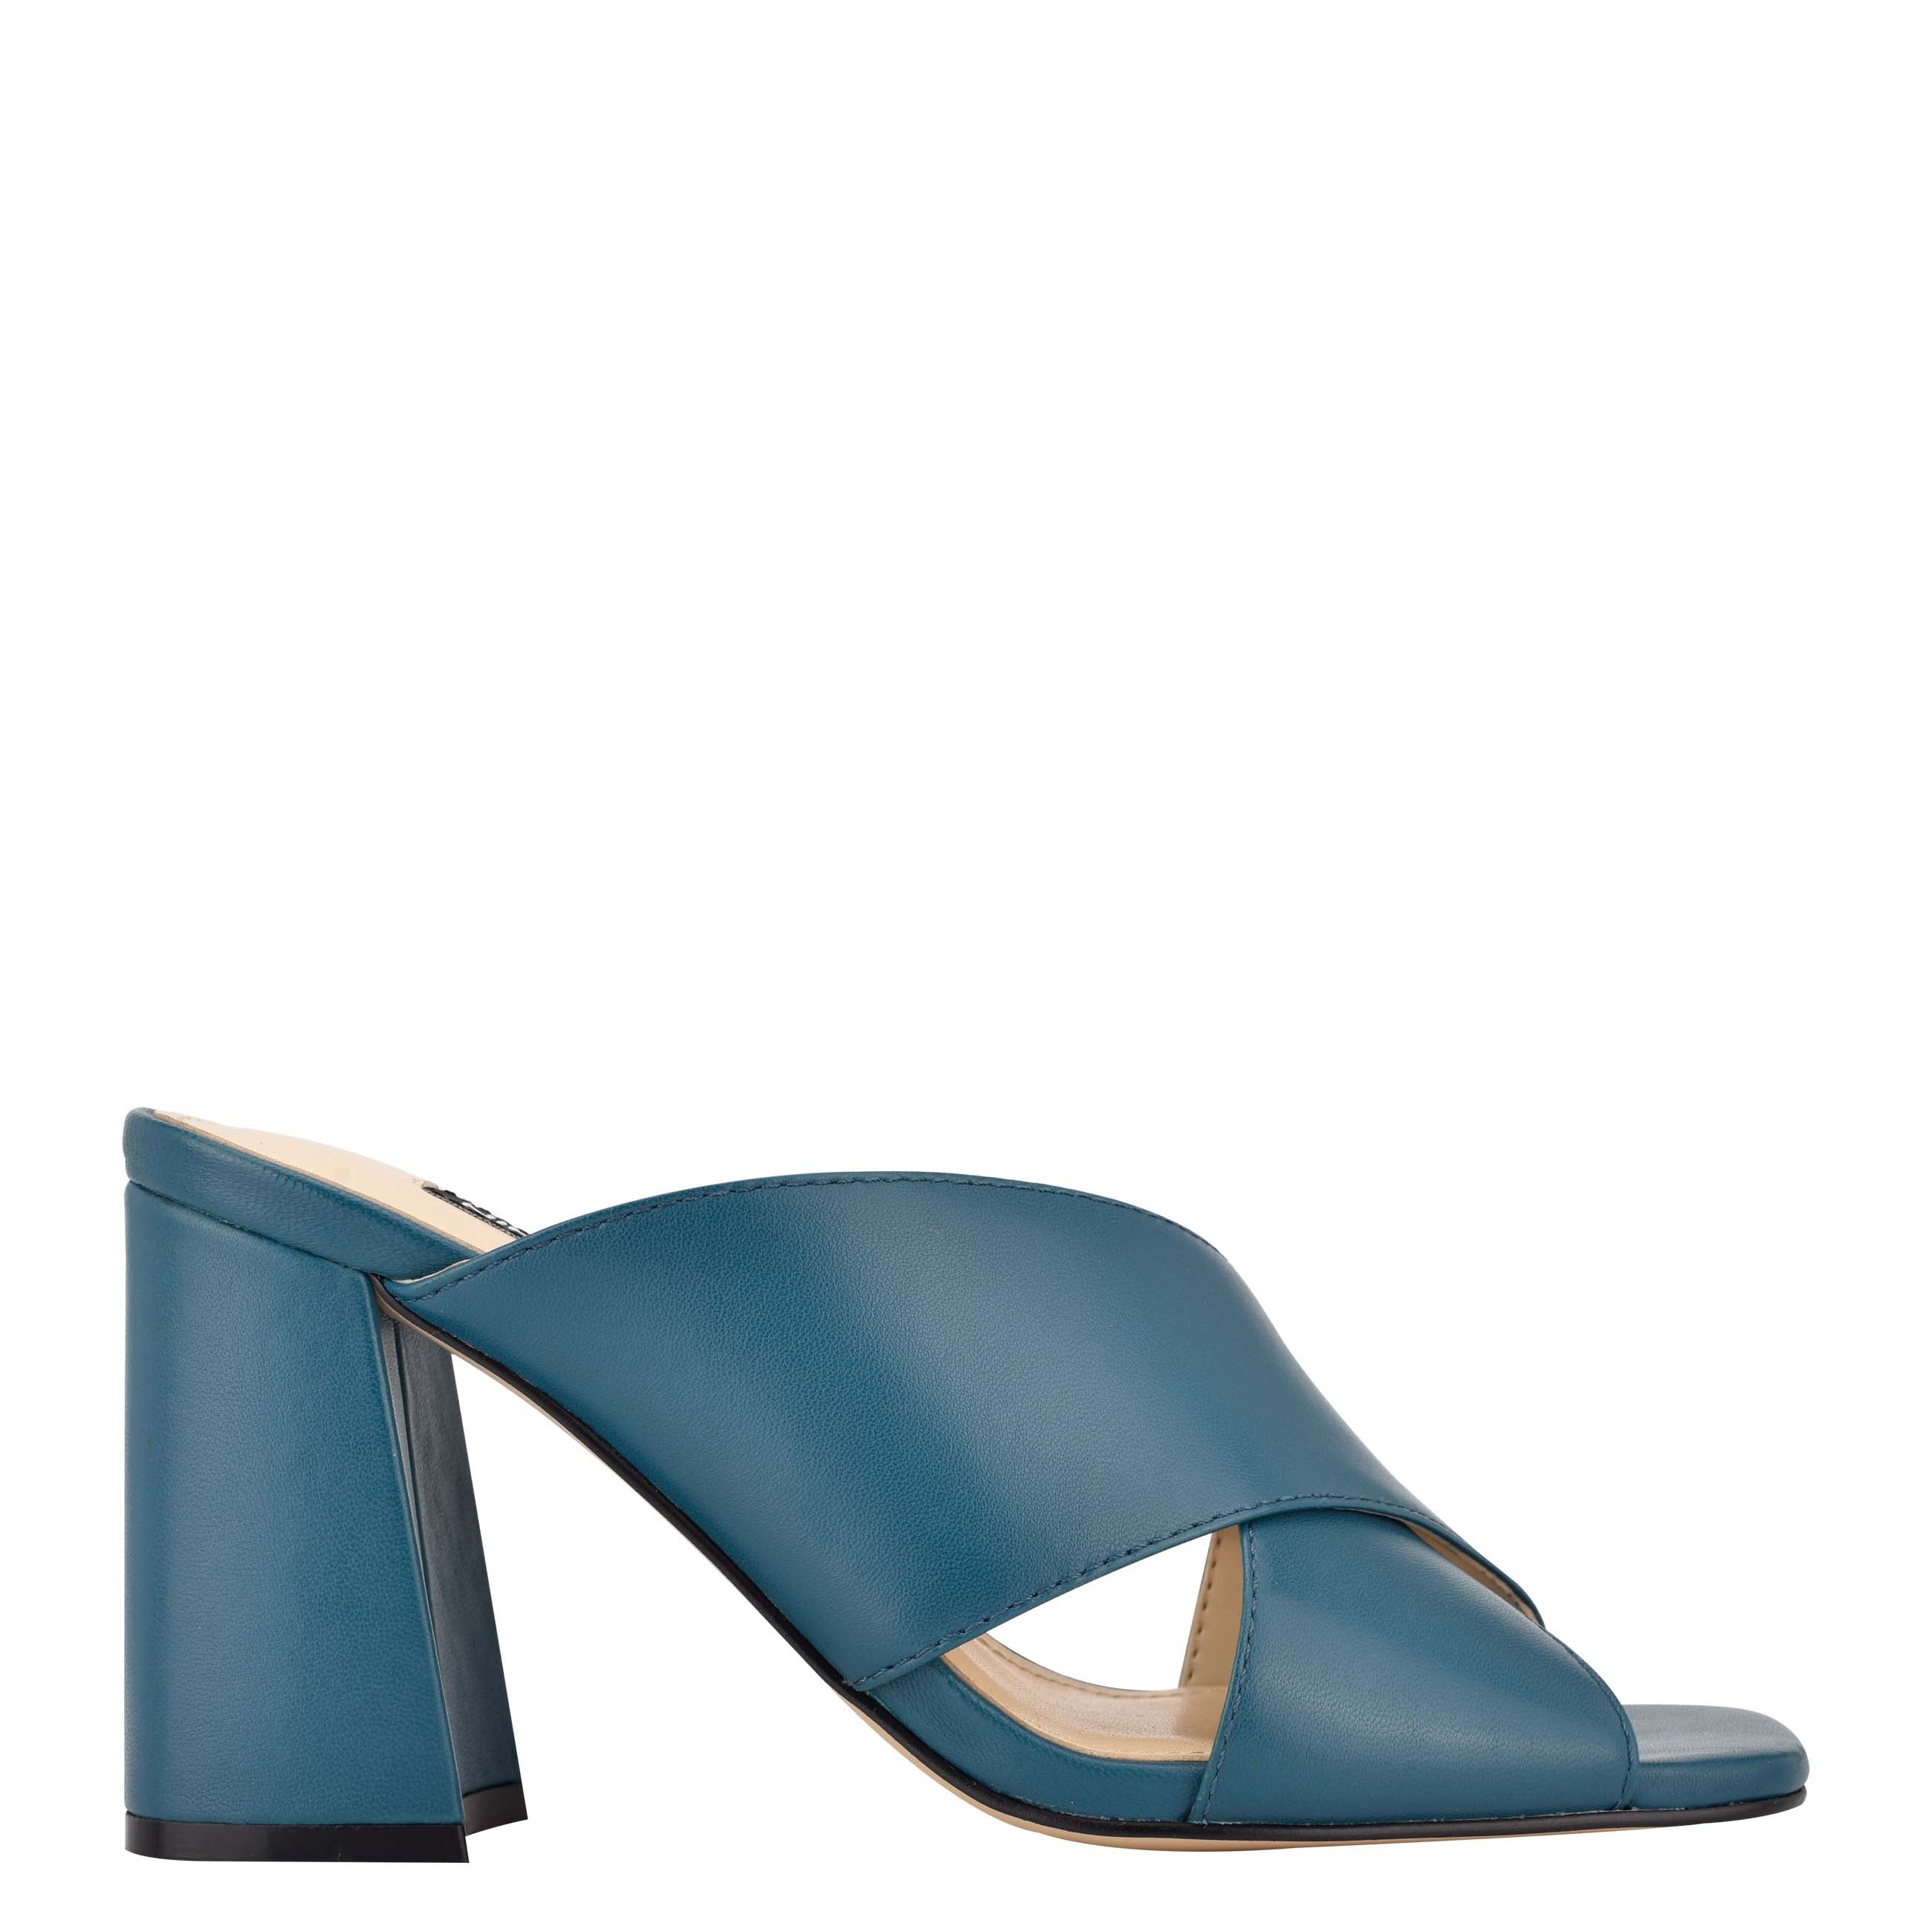 NINEWEST Gigi Block Heel Slide Sandals